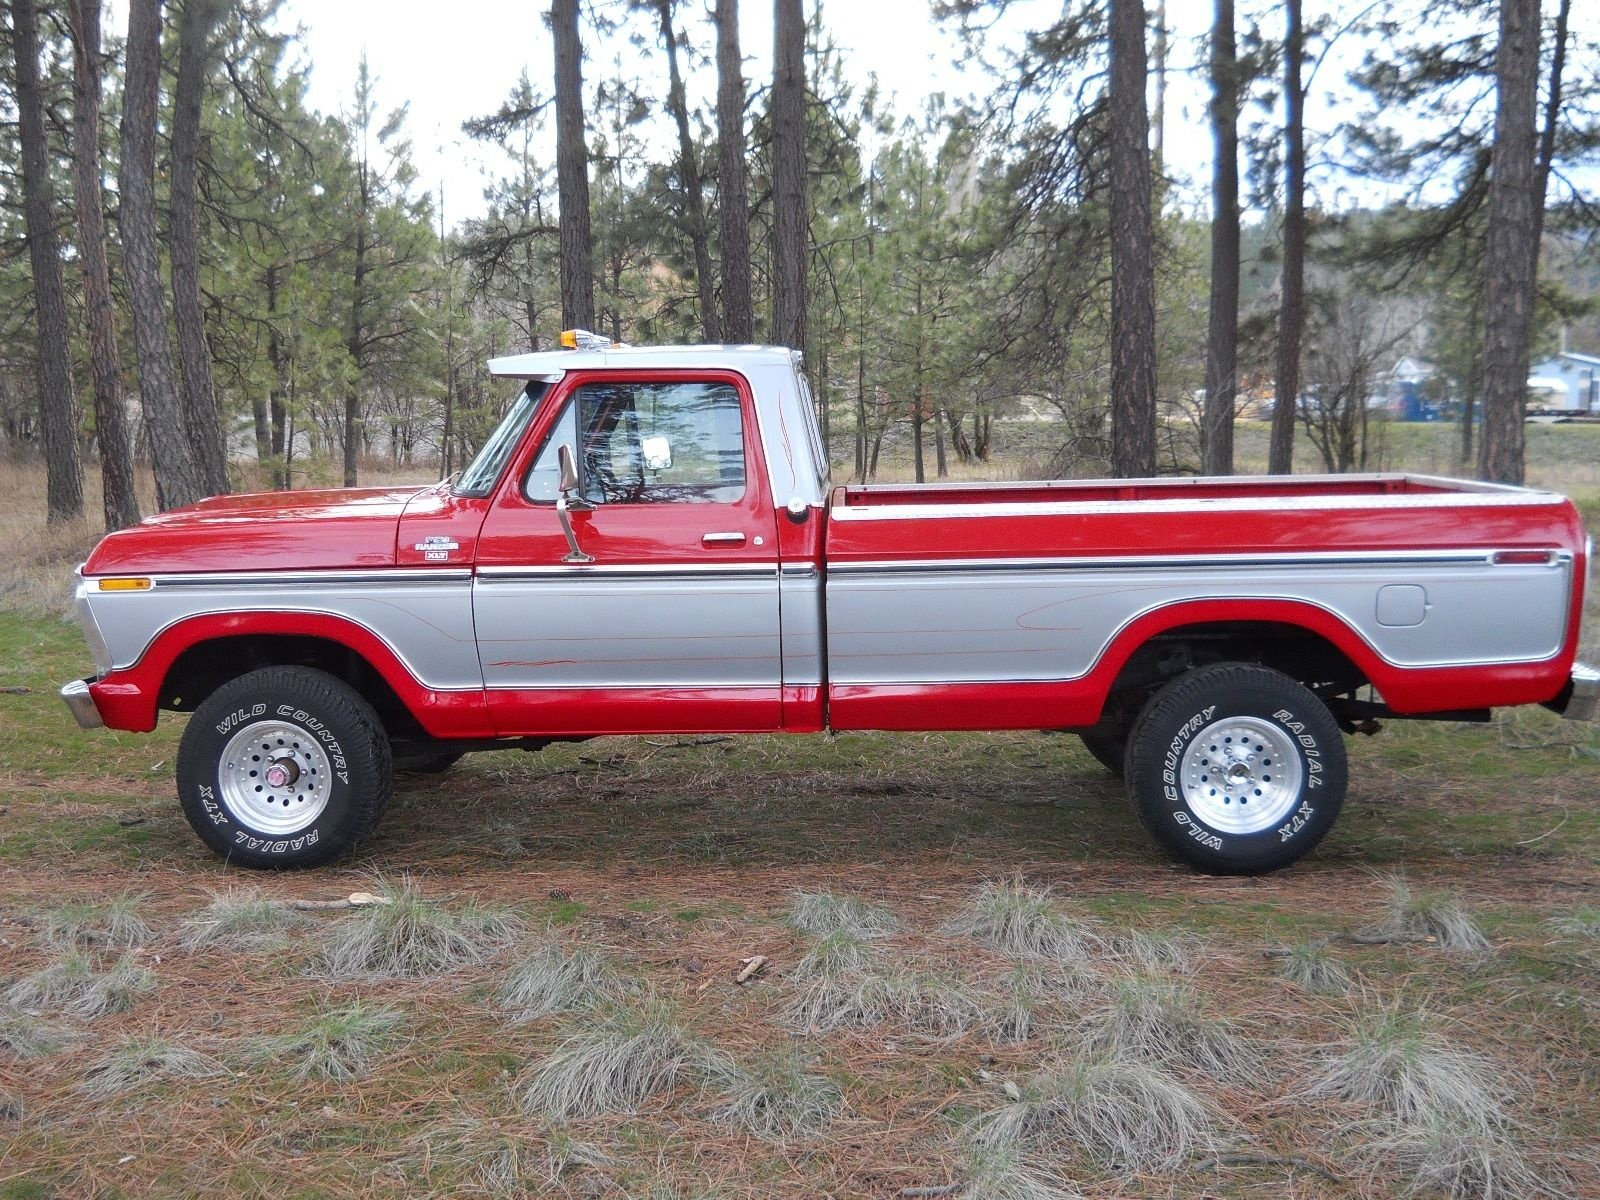 Shelby F150 For Sale >> 1977 Ford F-150 - Overview - Review - CarGurus